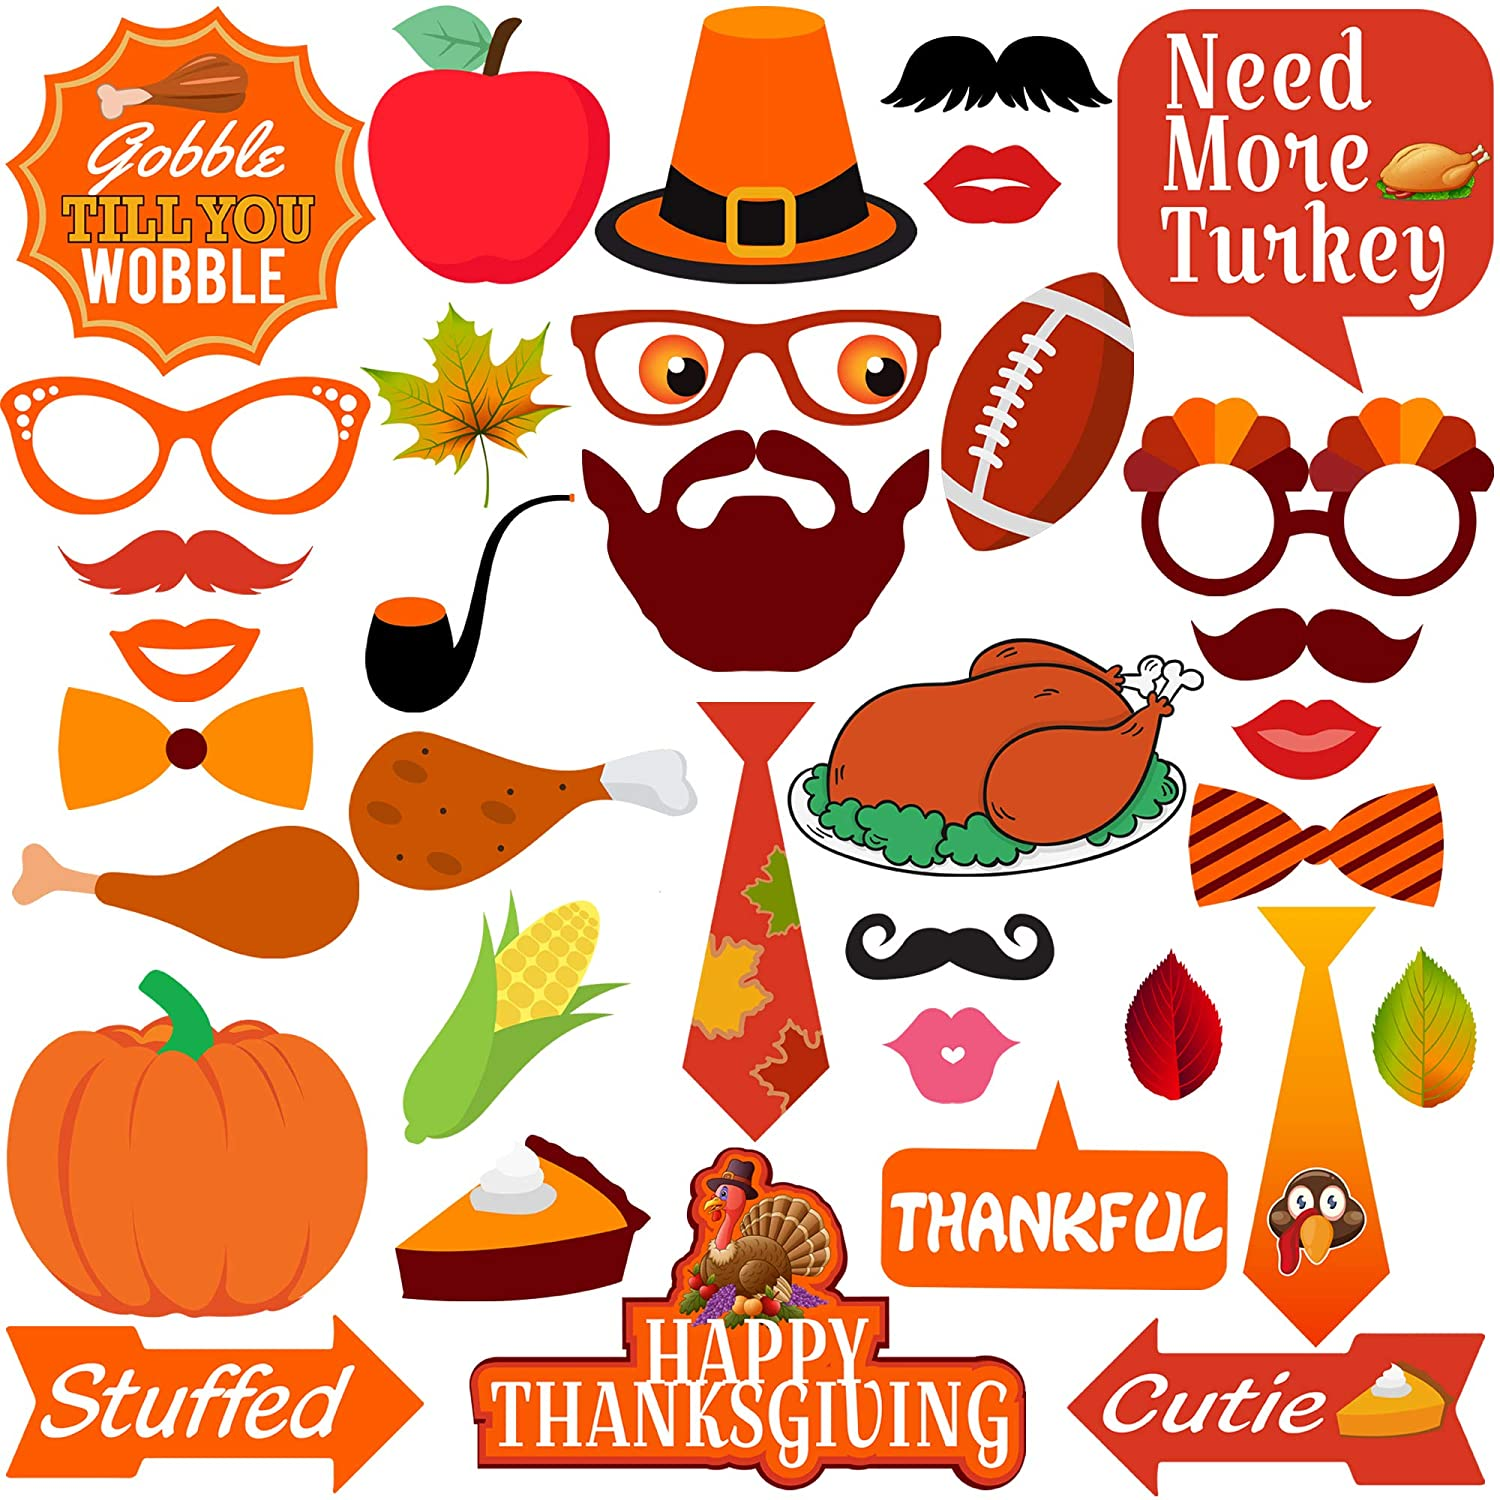 KatchOn Thanksgiving Photo Booth Props 35 DIY Kits Thanksgiving Day Decorations,Happy Thanksgiving Party Favor, Element of Pumpkin Turkey Bread Corn Fruits Maple Leaves for Autumn Party Fall Party